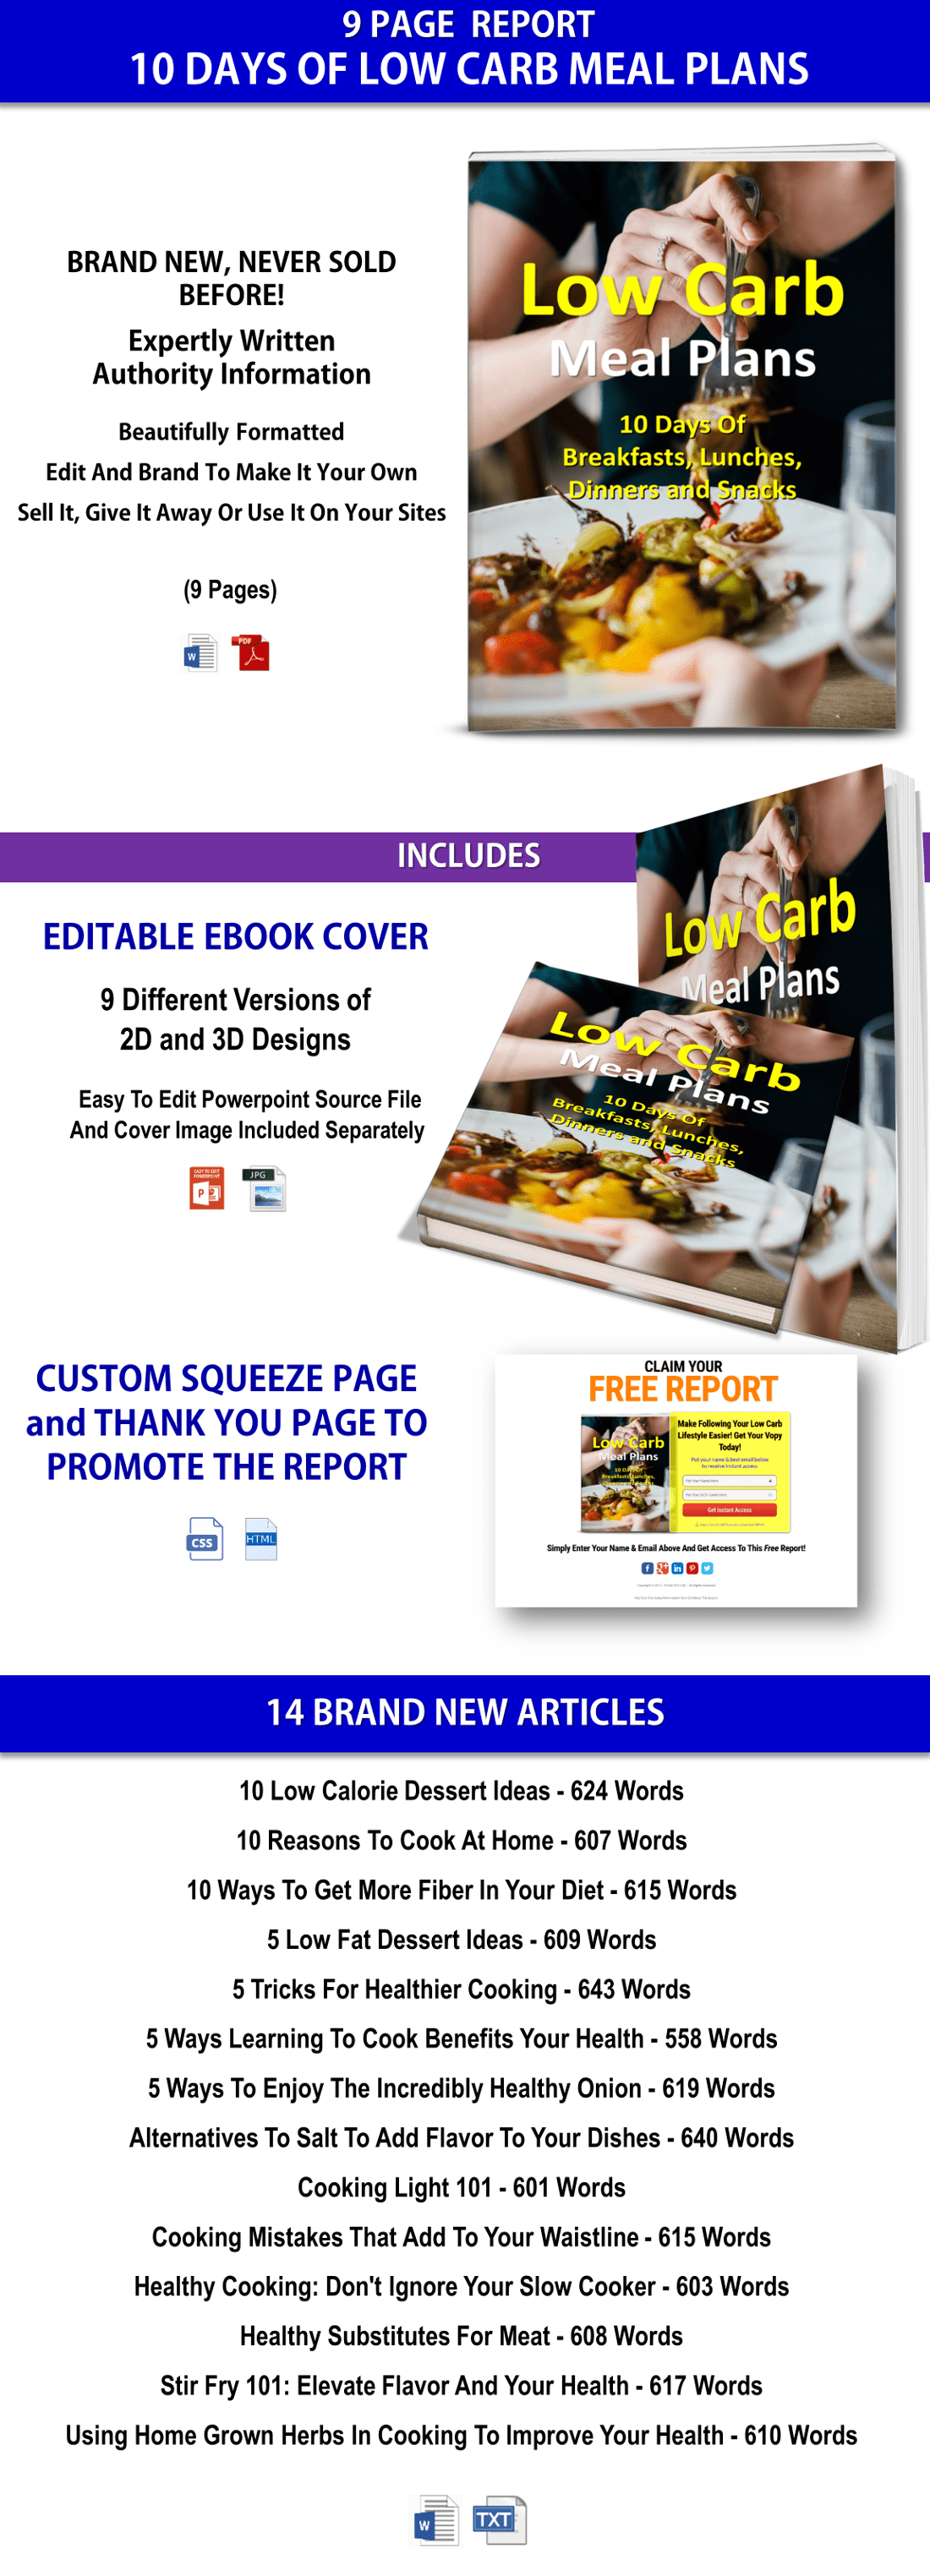 Low Carb Meal Plans and Articles PLR